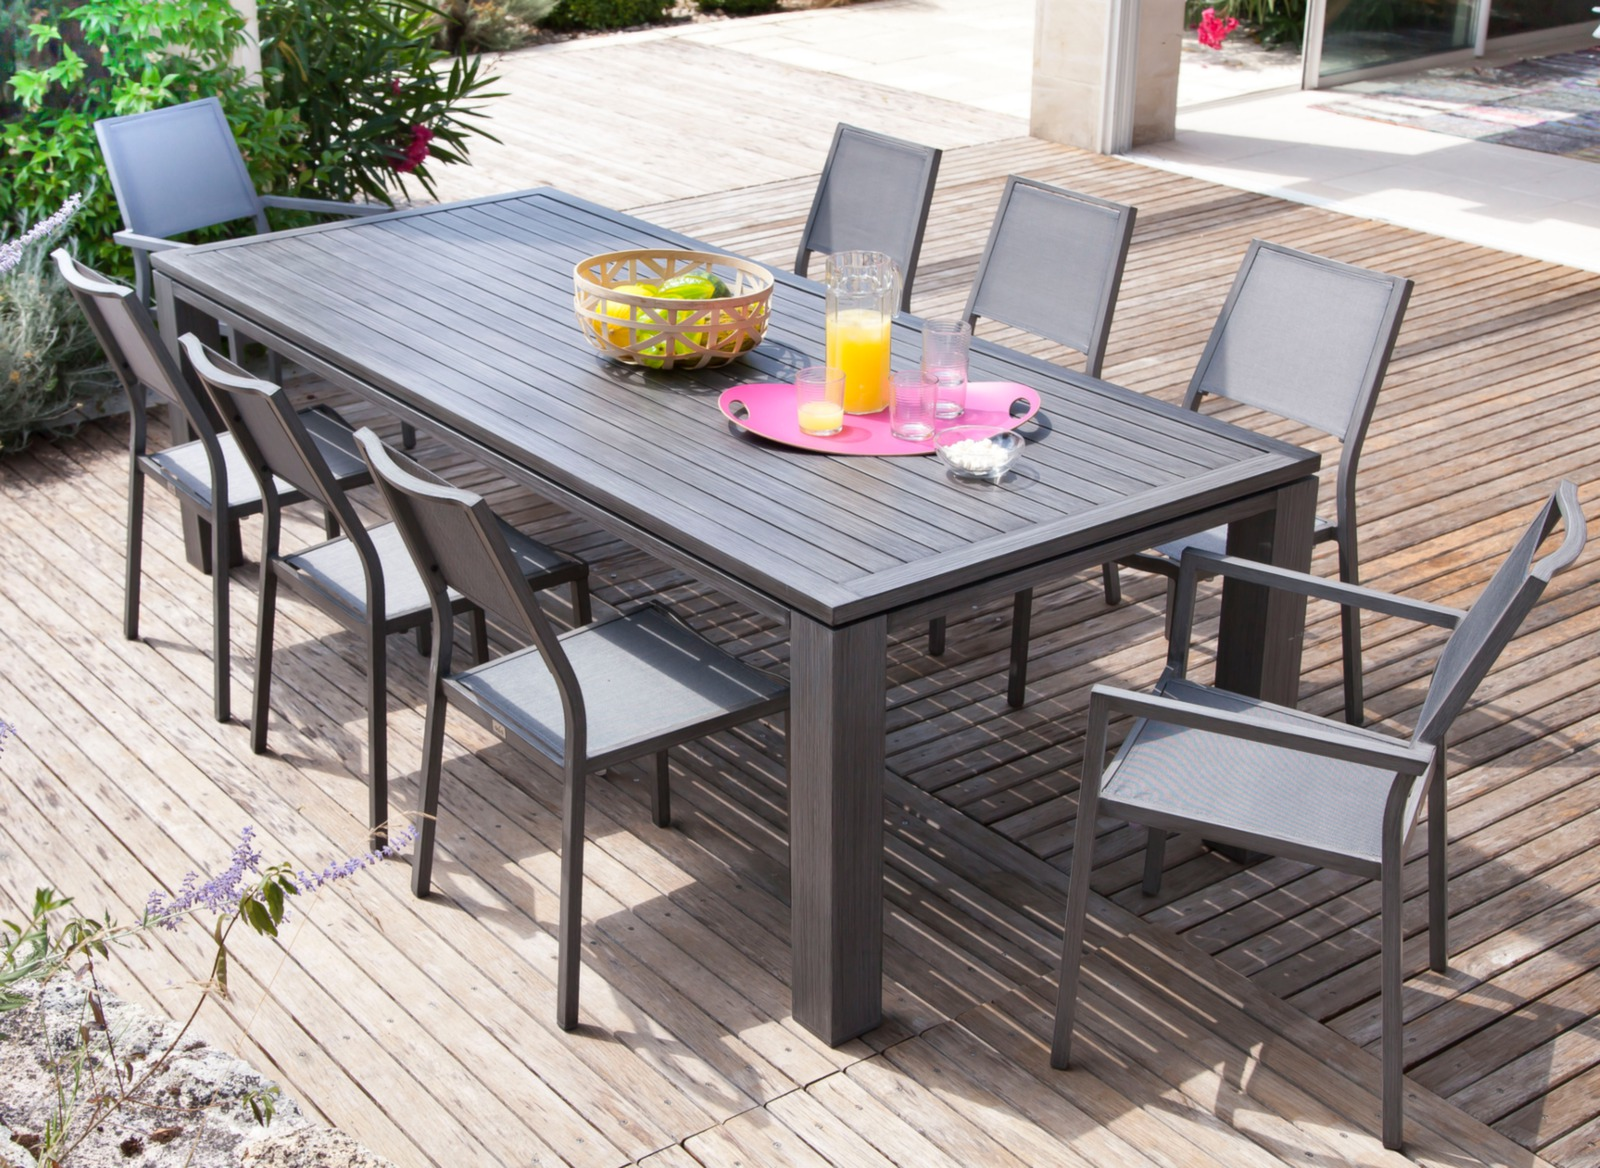 Salon de jardin avec grande table promotion proloisirs for Ensemble chaise table jardin